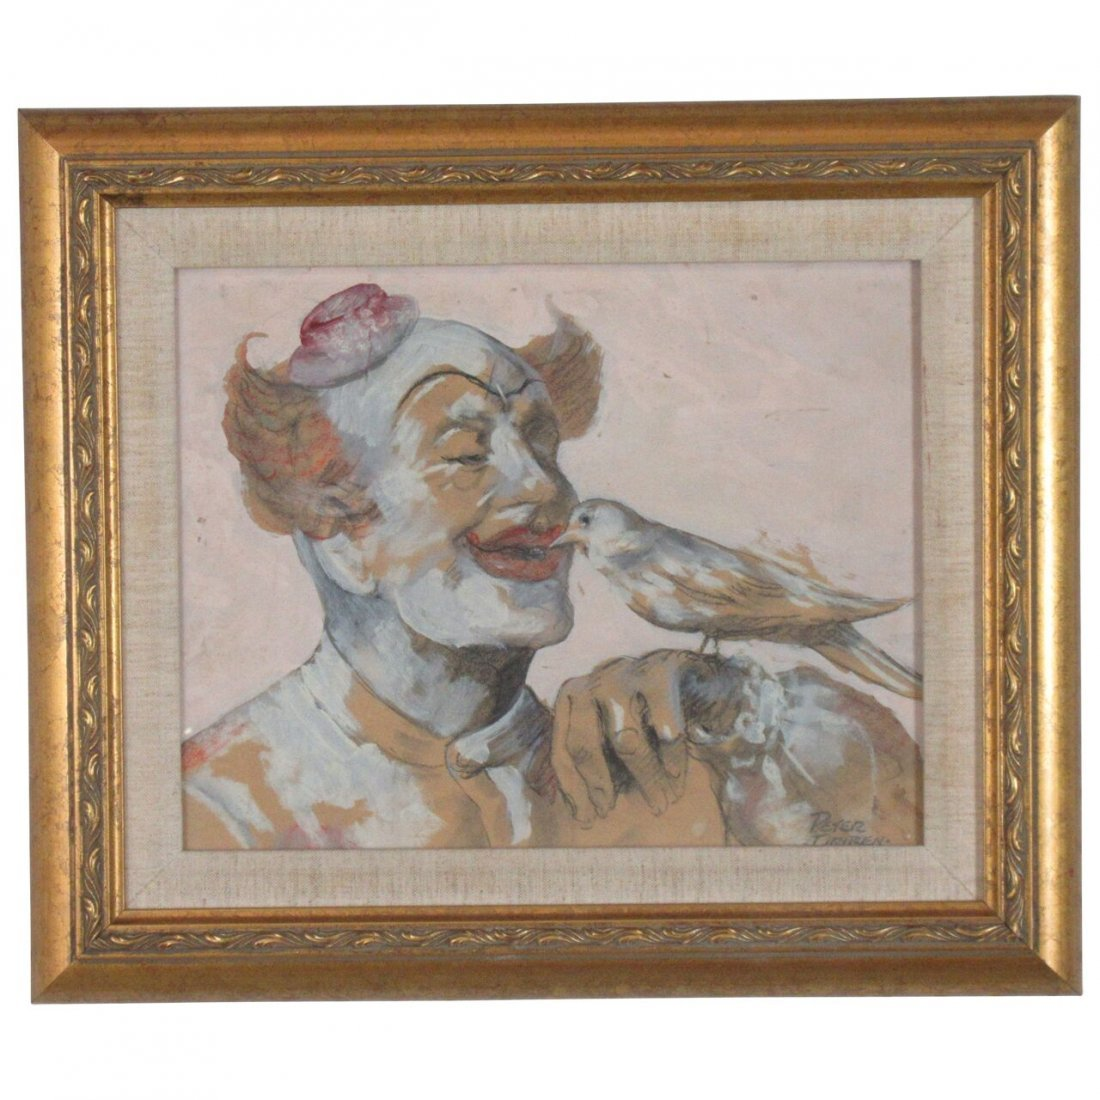 Painting of a Clown by Peter Driben